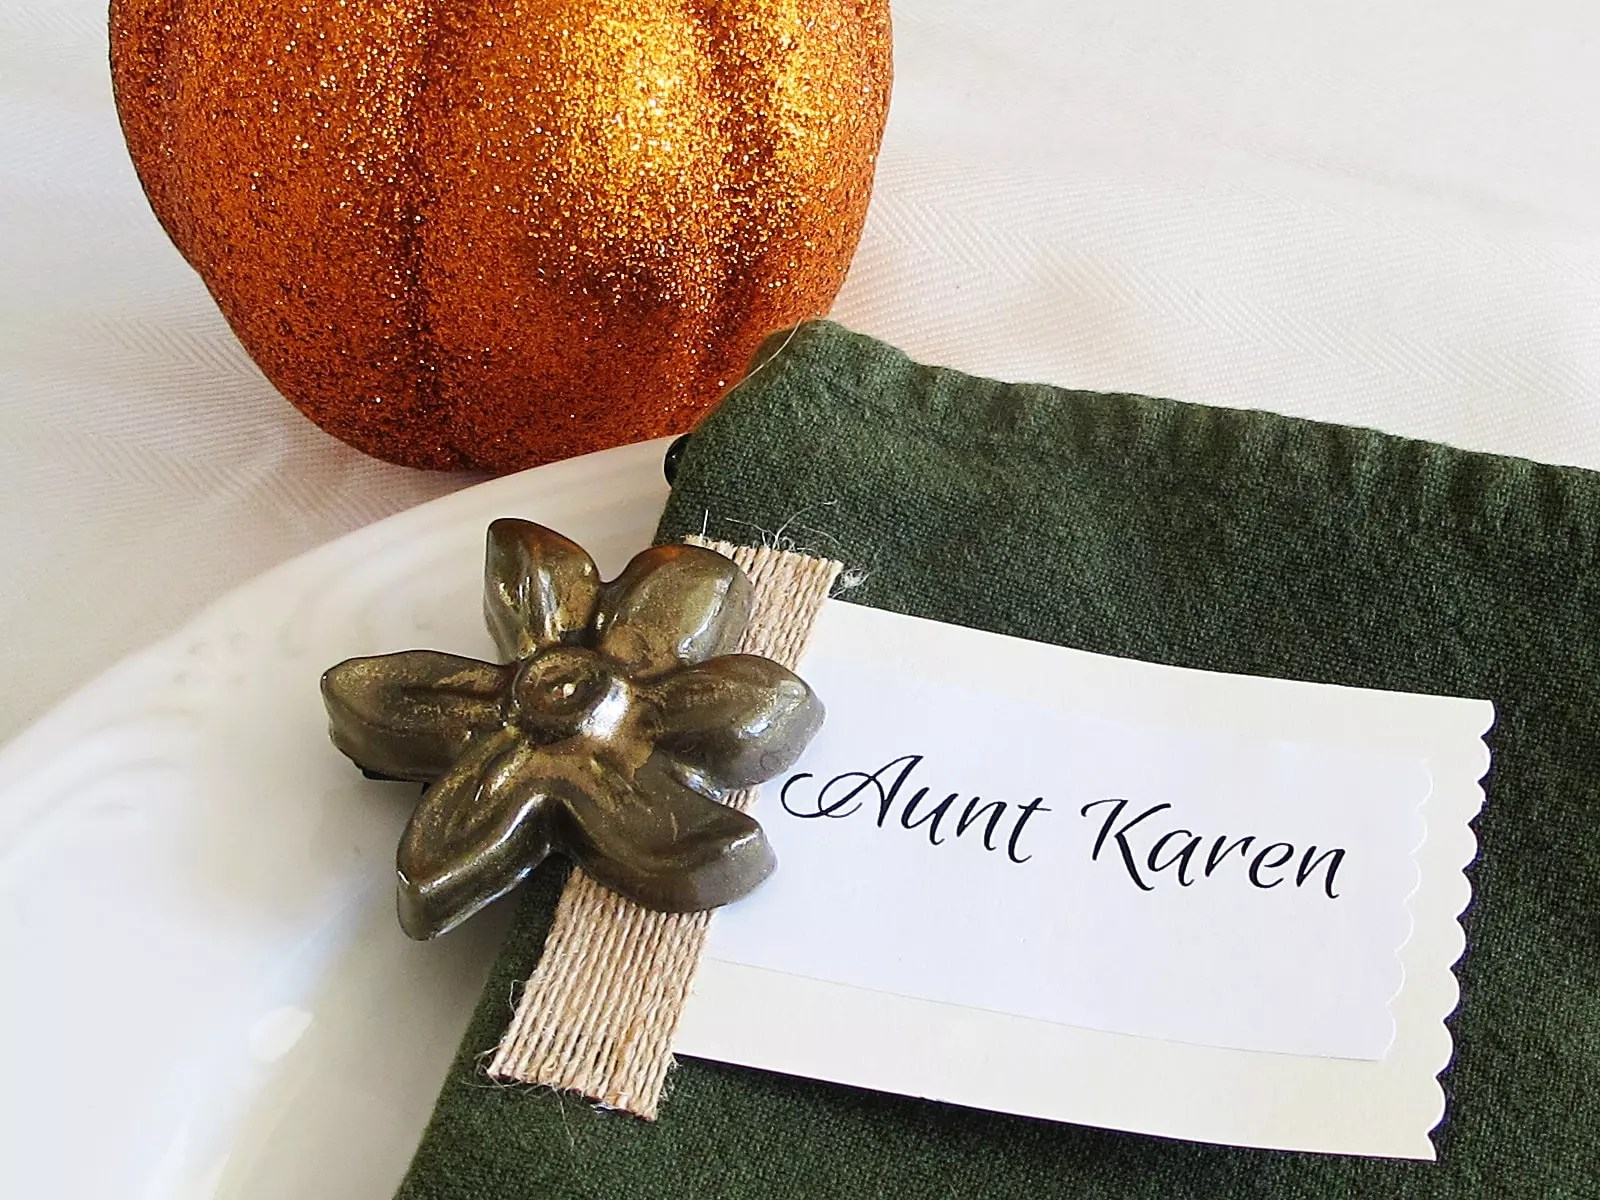 How to make a resin charm place card holder